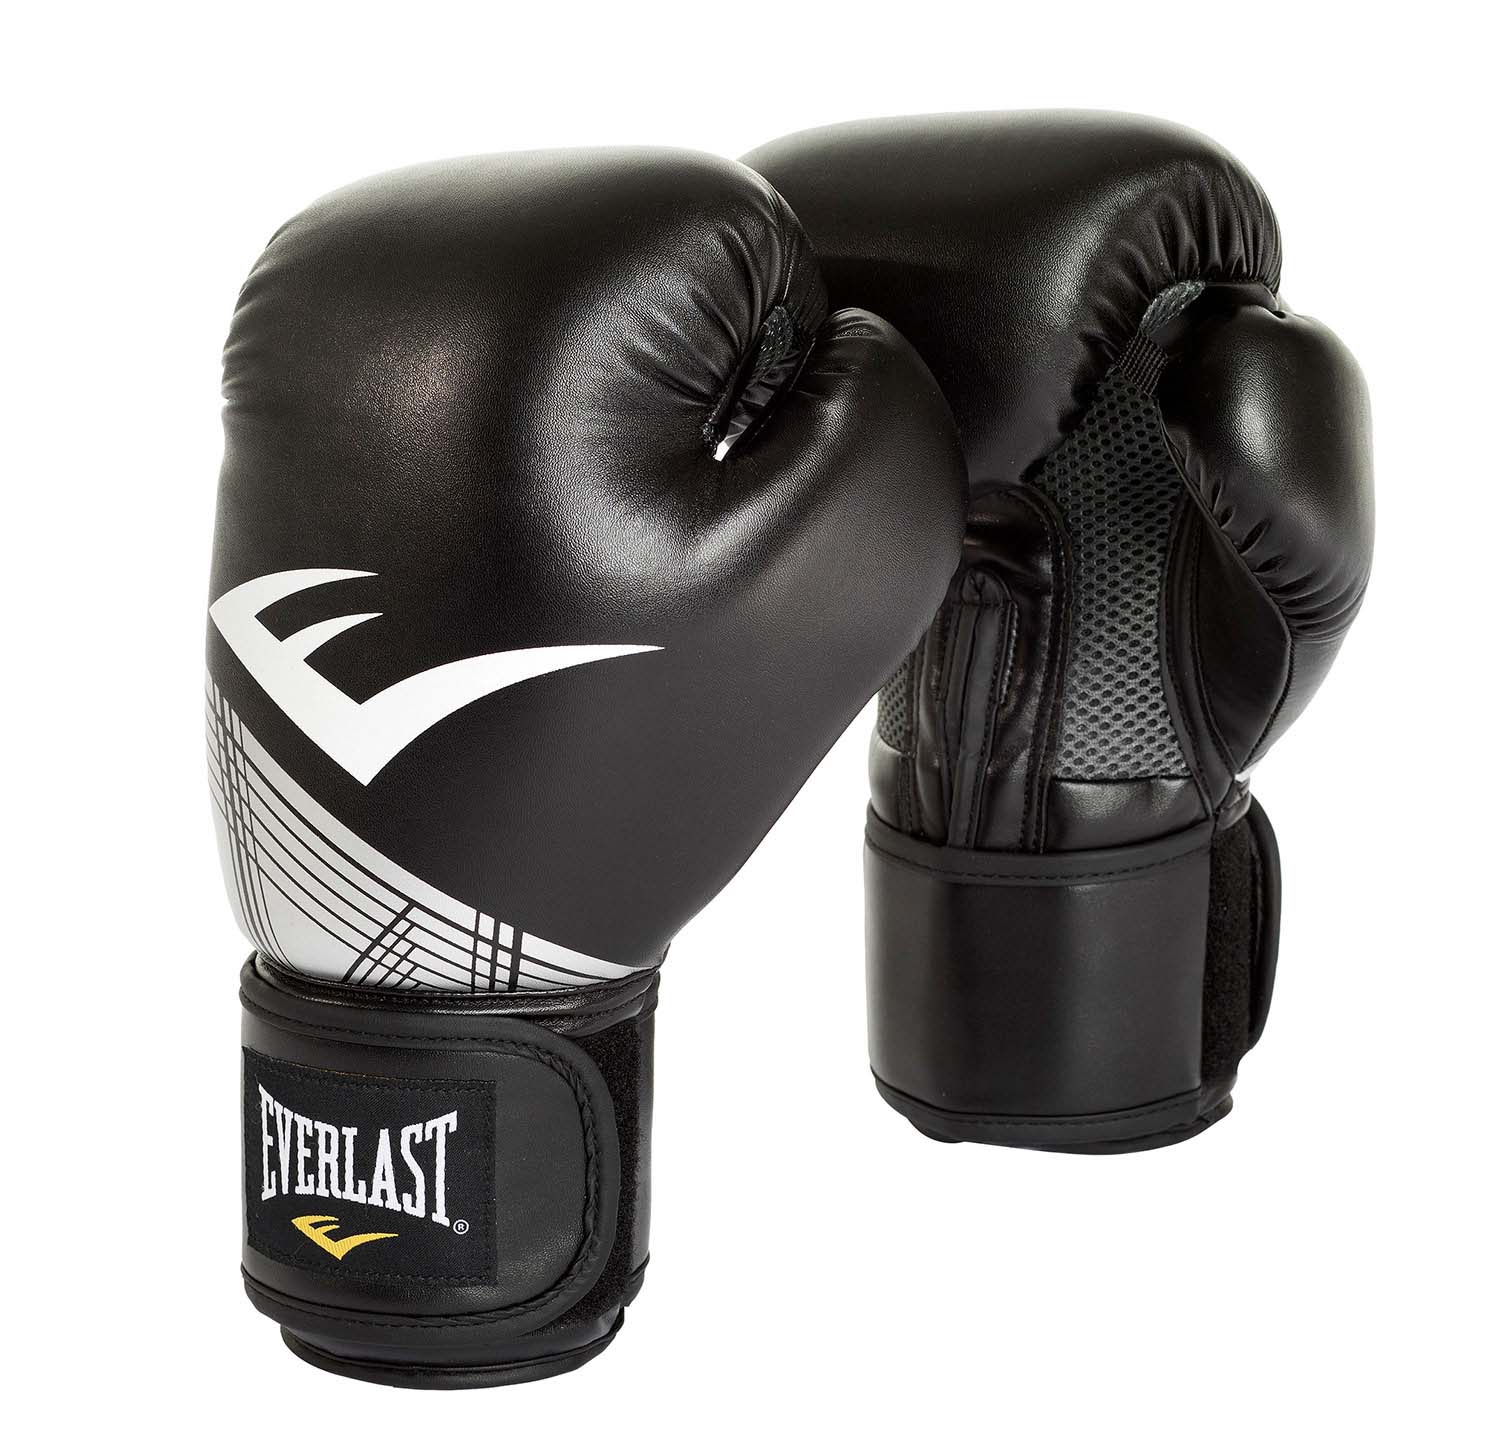 PRO STYLE ADVANCE TRAINING GLOVE  16oz